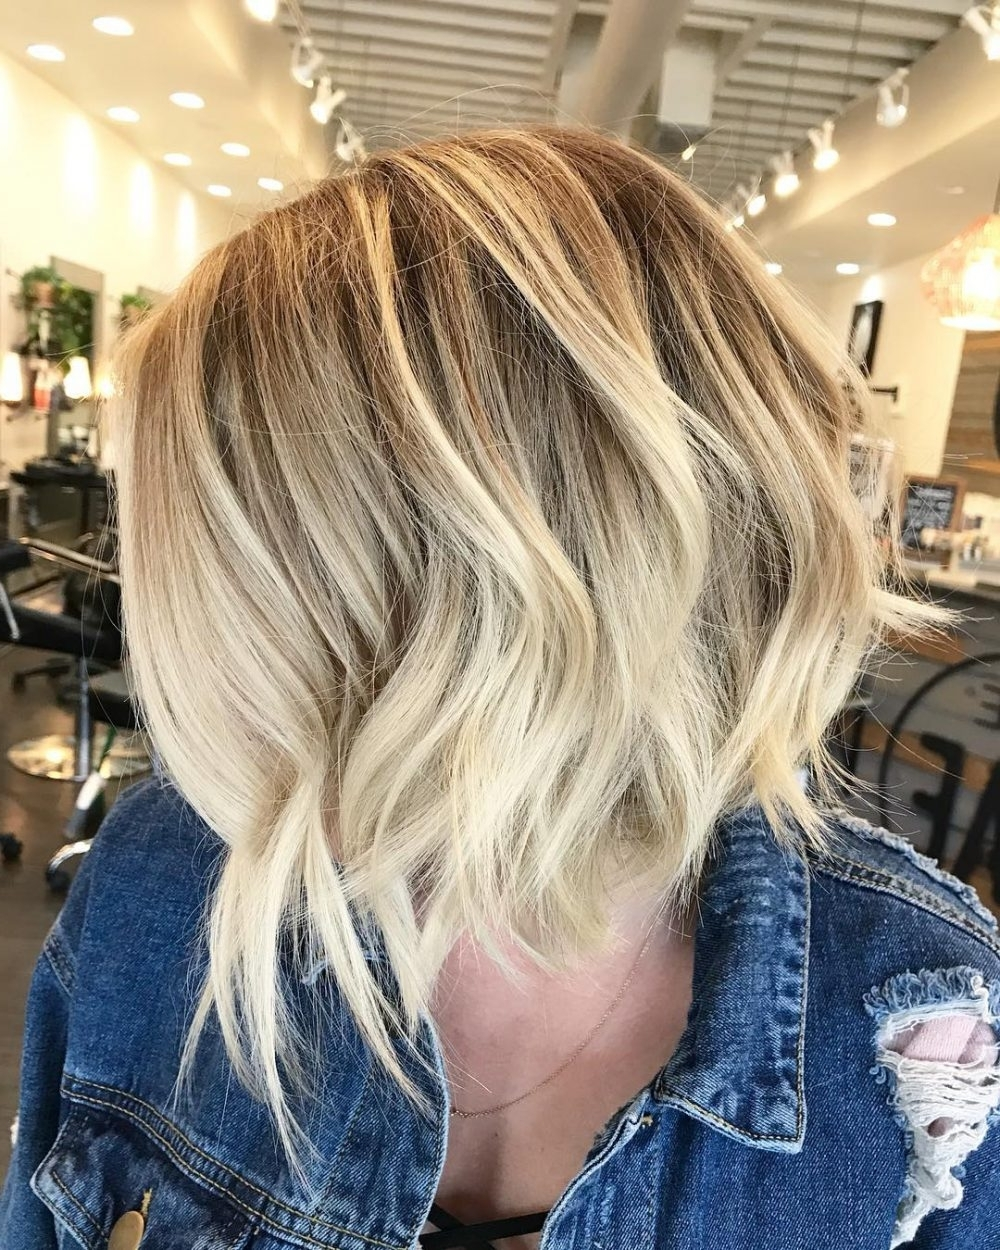 27 Flattering Haircuts With Choppy Layers 10+ Adorable Medium Length Layered Textured Hairstyles